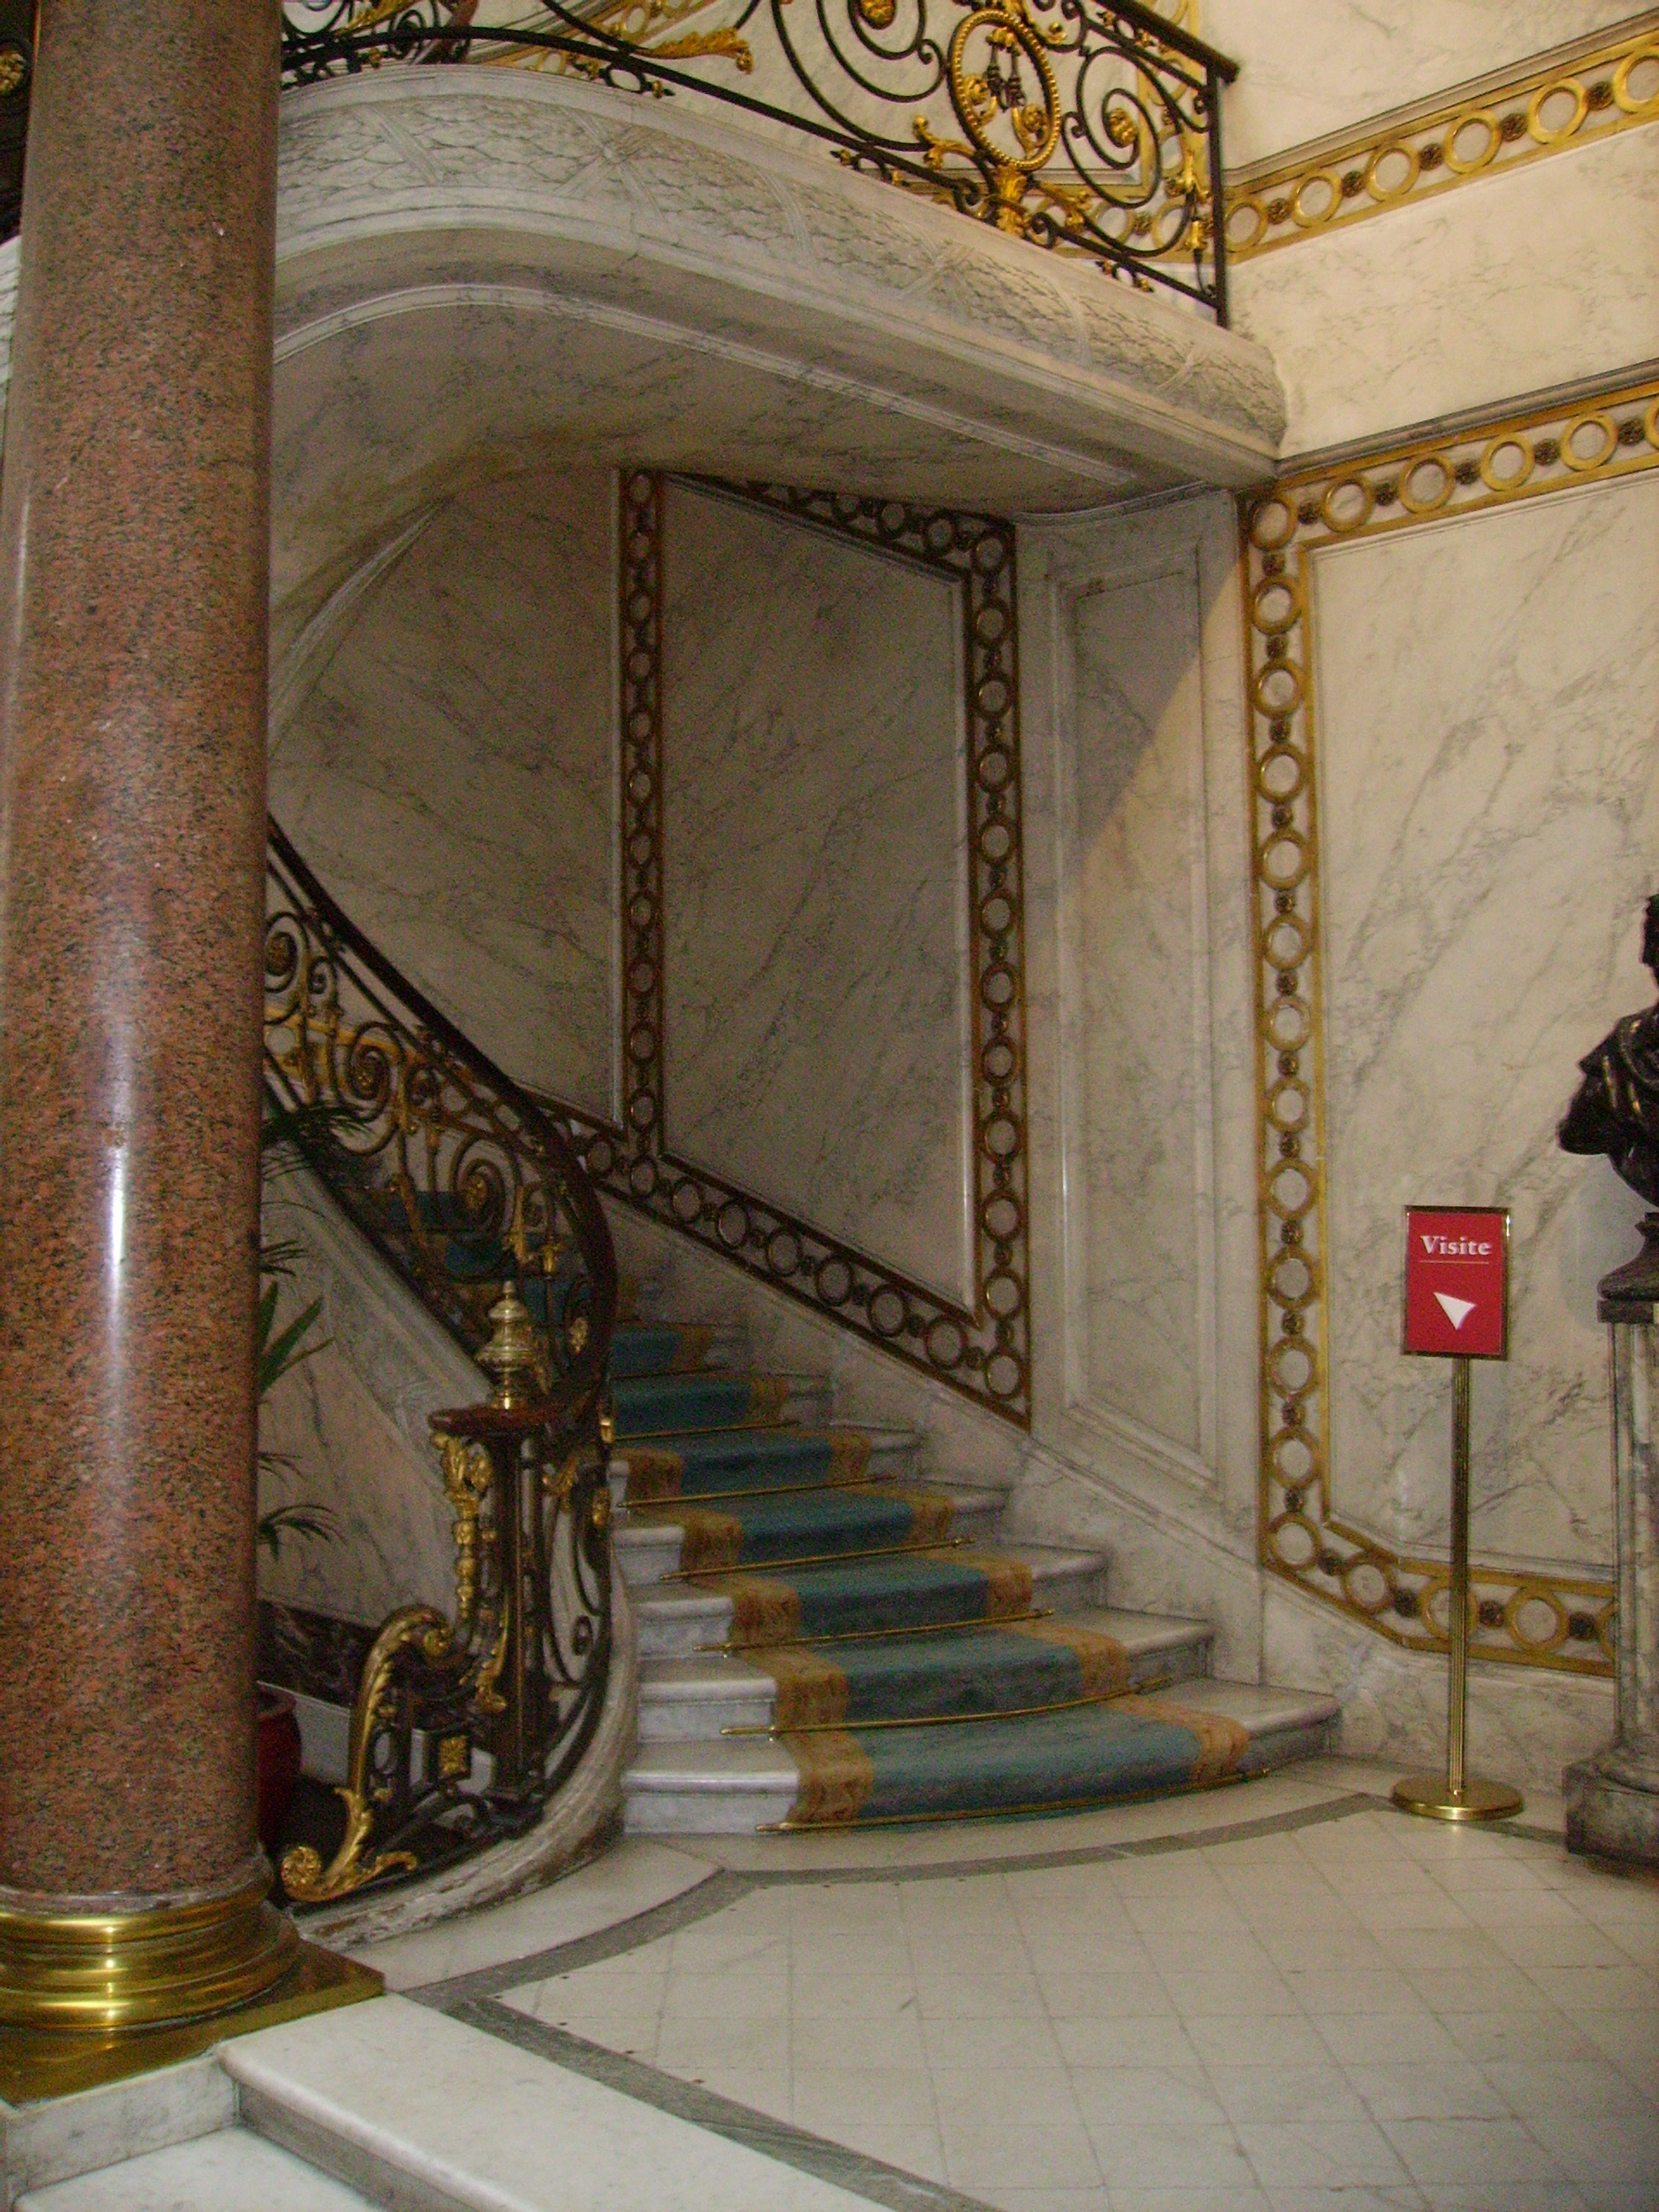 file staircases in mus e jacquemart andr jpg wikimedia commons. Black Bedroom Furniture Sets. Home Design Ideas